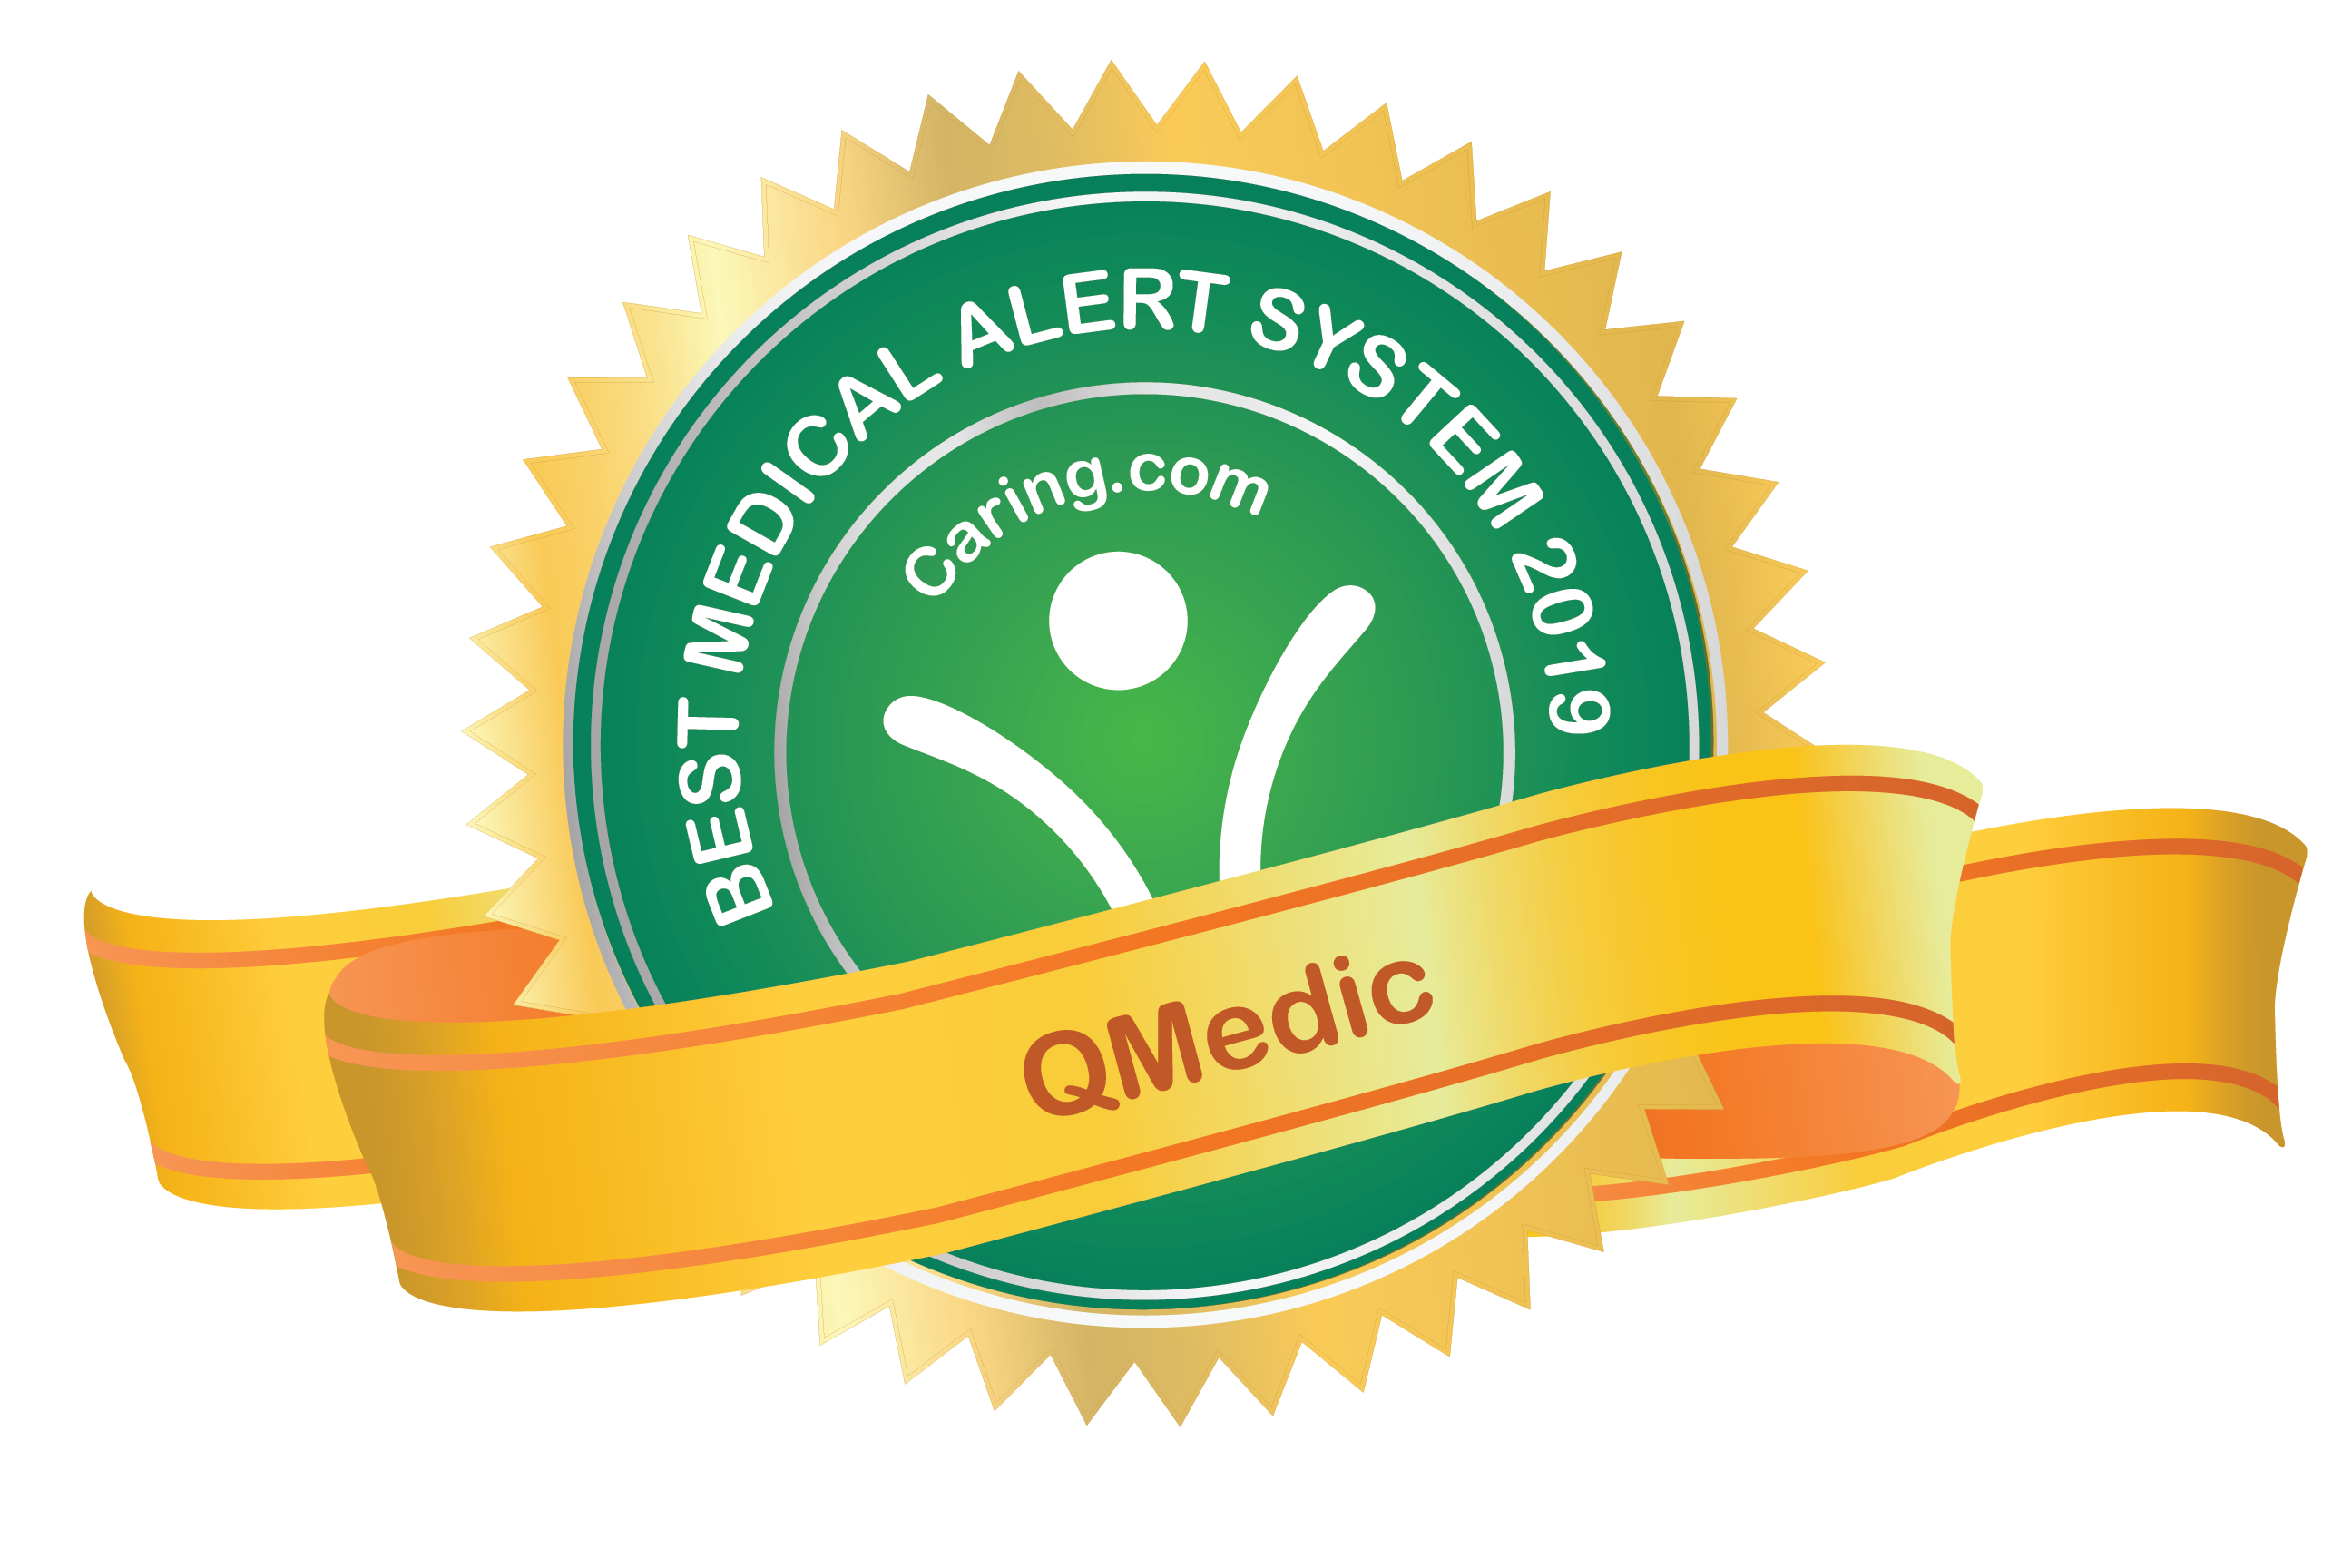 Caring.com Best Medical Alert Systems - QMedic - Best Compliance Monitoring 2019